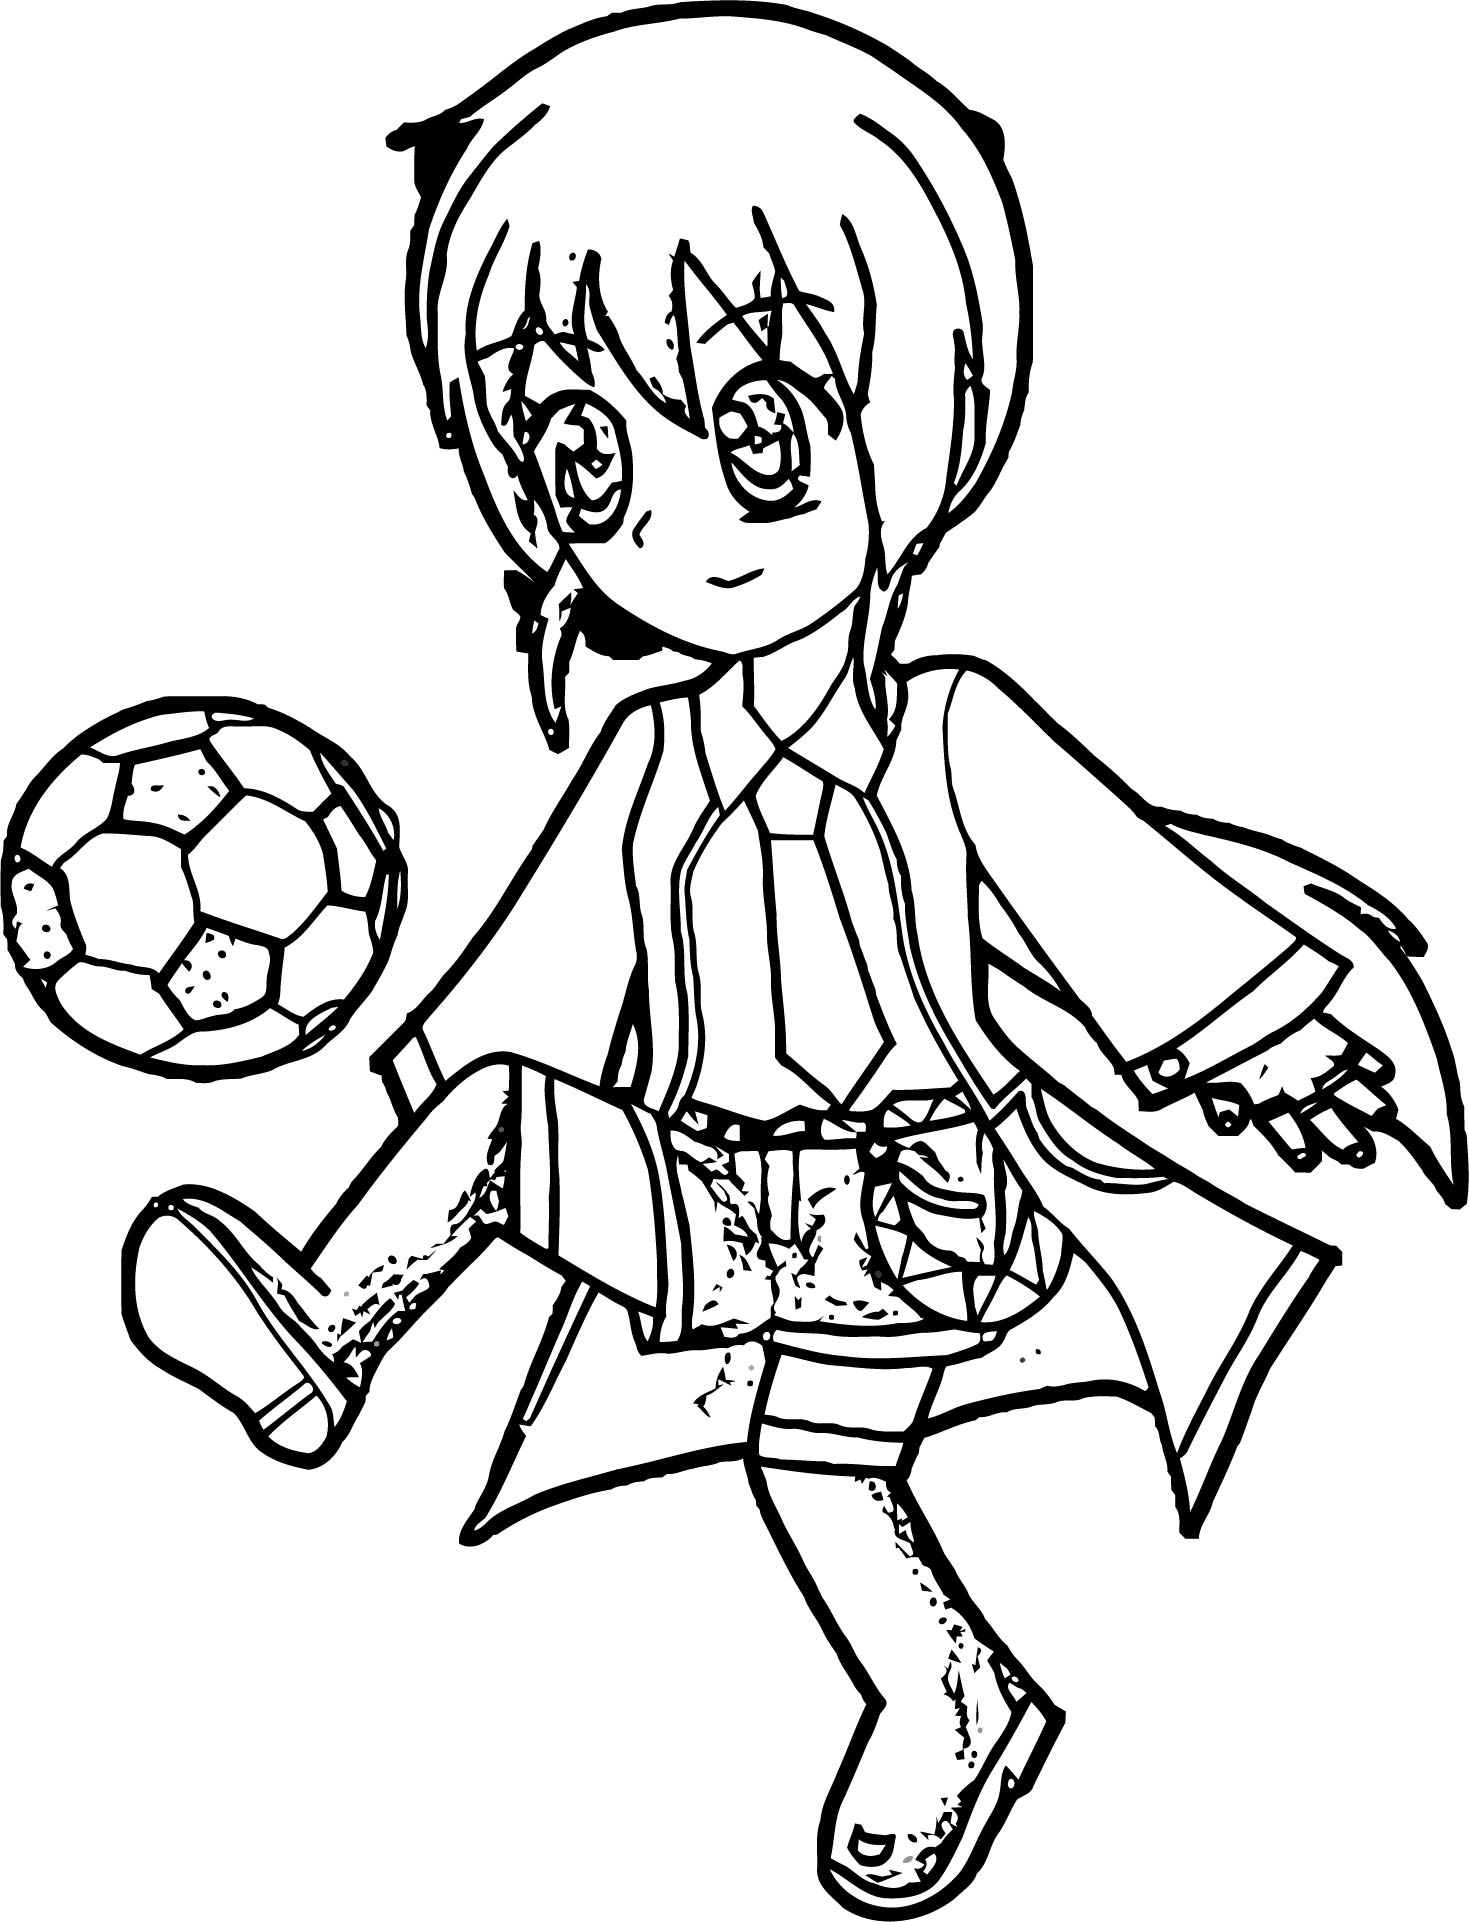 Manga Girl Playing Ball Coloring Page